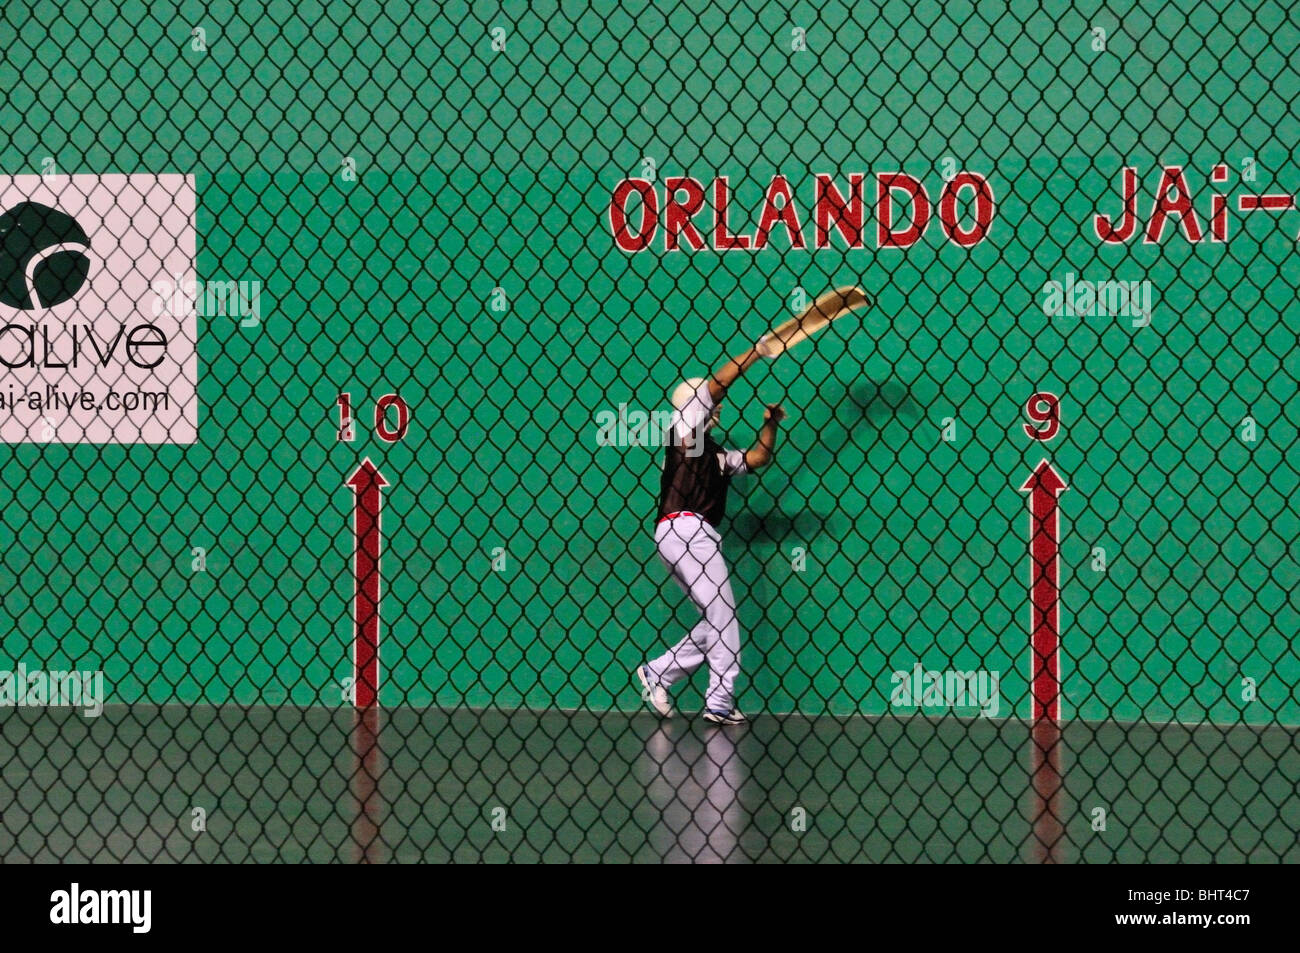 Jai alai player prepares to catch the ball (pelota) in his woven basket (cesta) at the Orlando fronton in Fern Park, - Stock Image